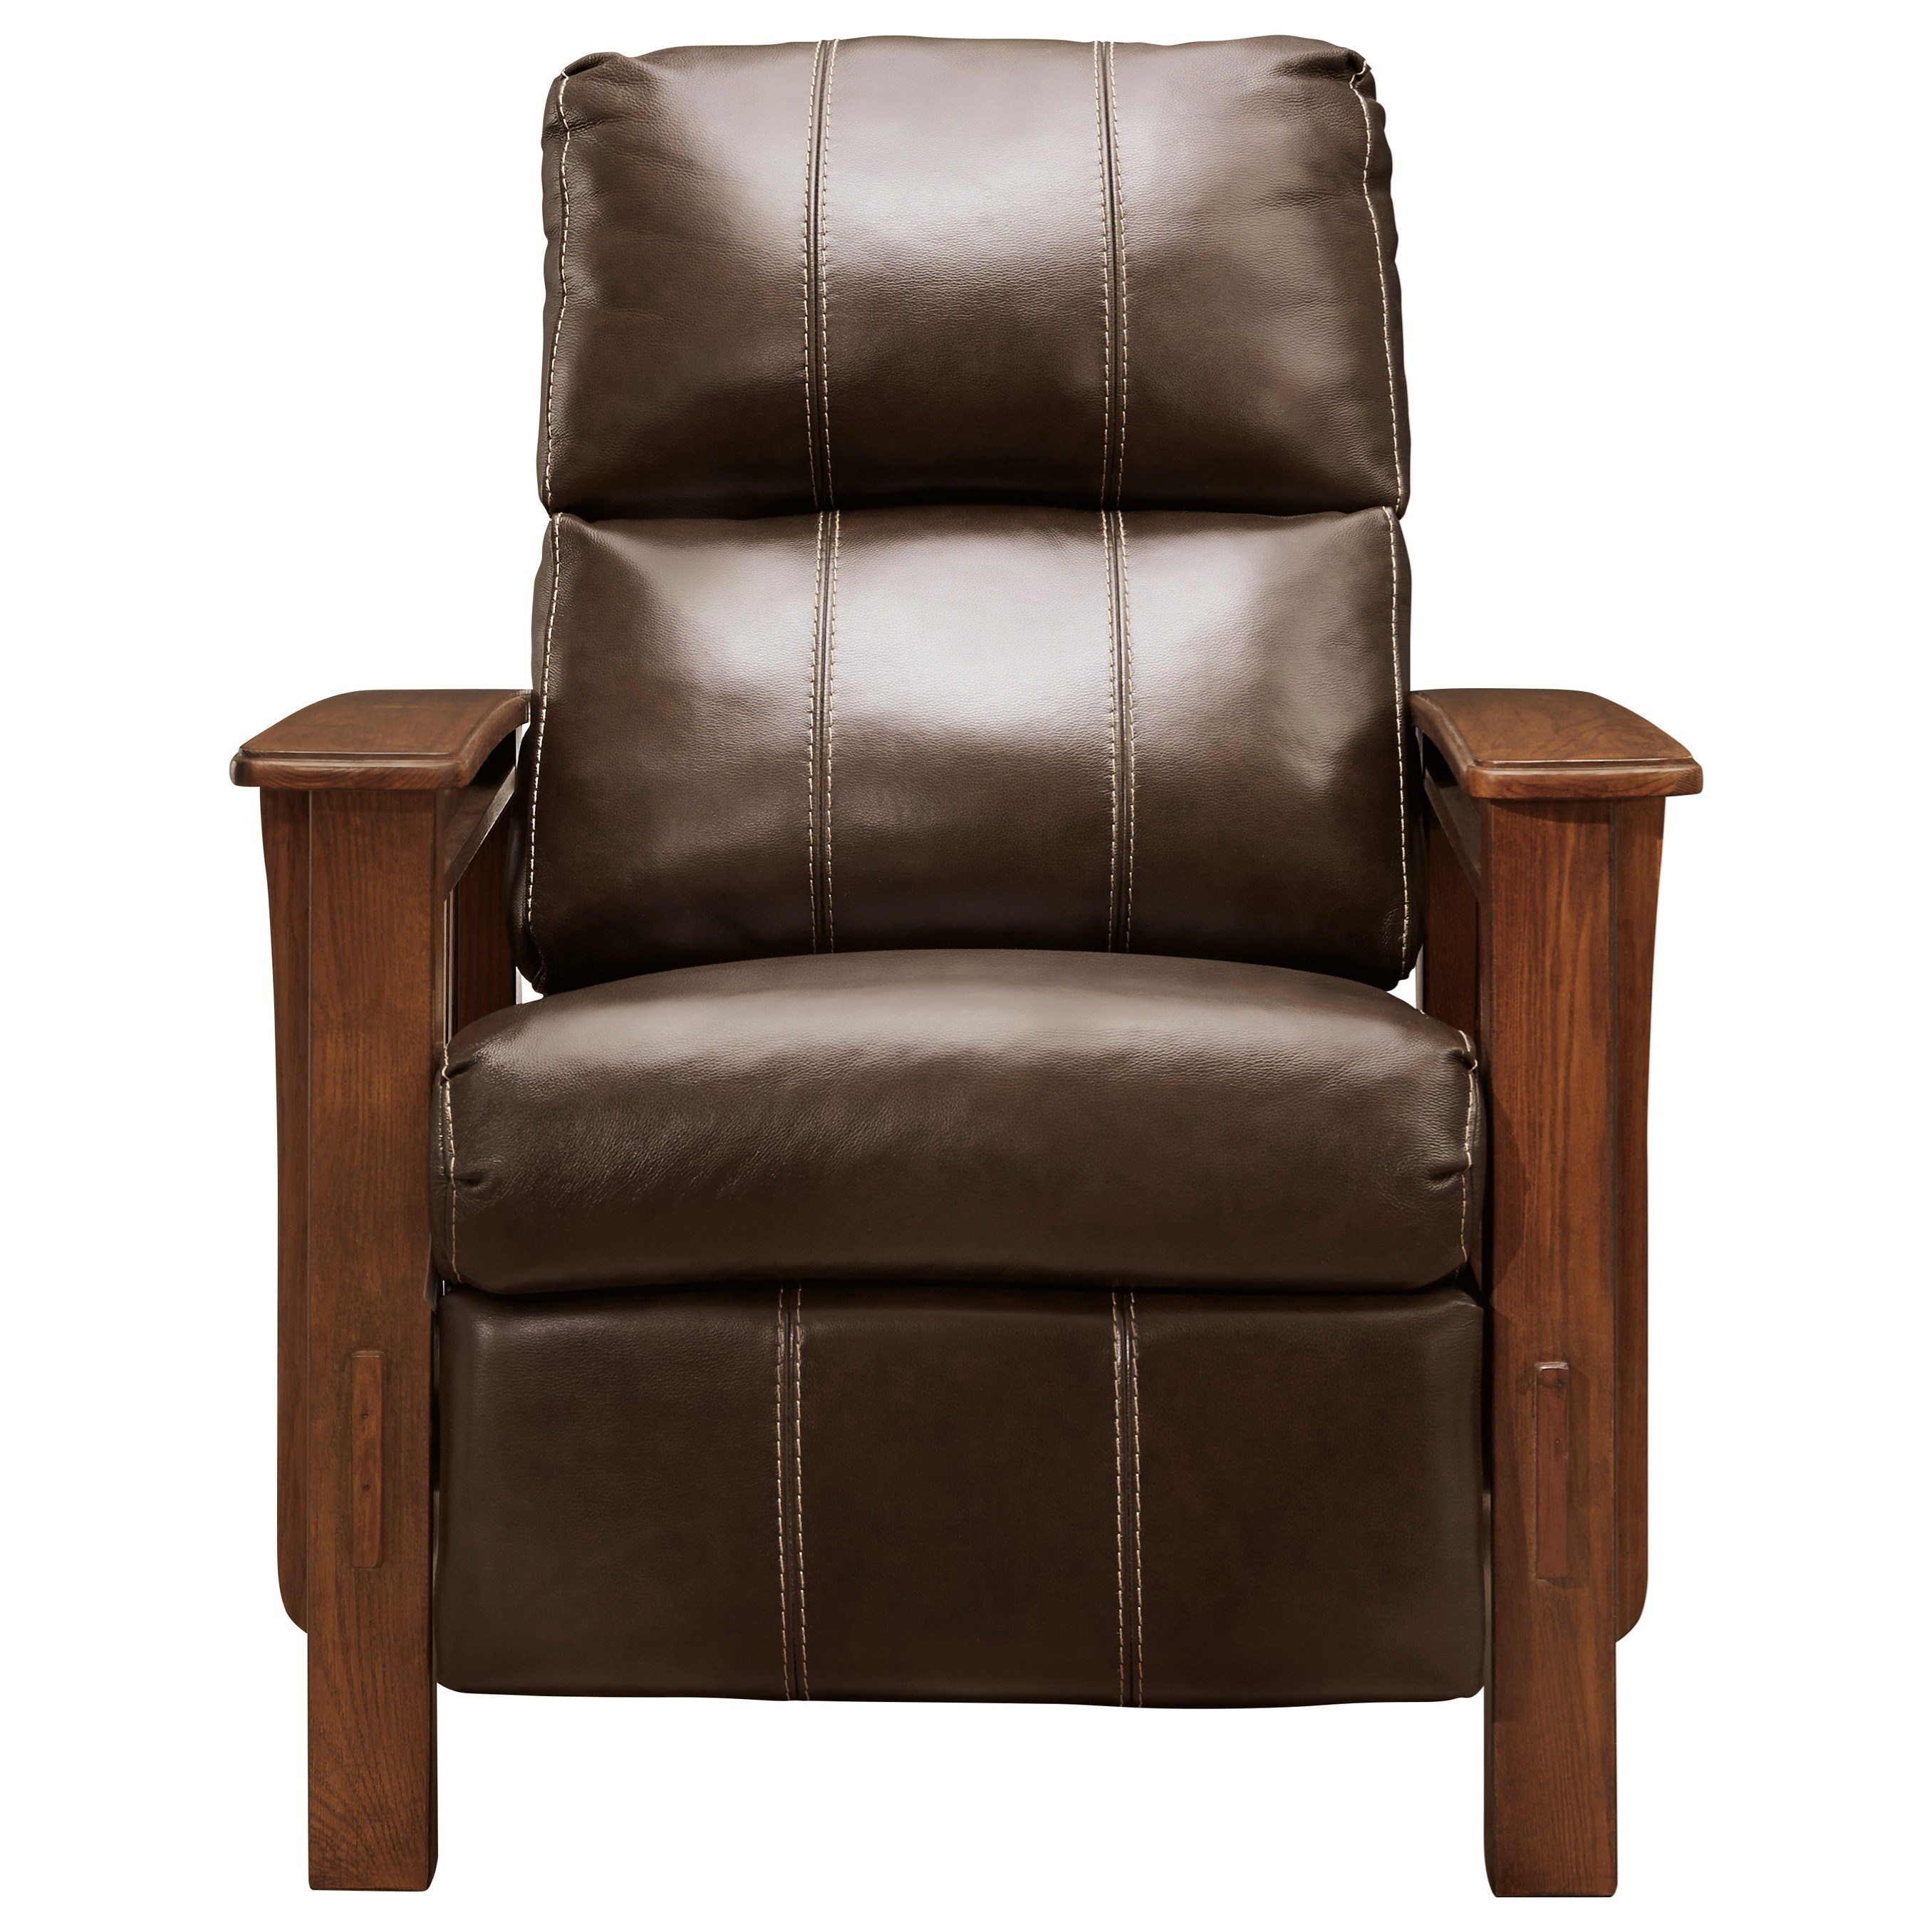 Chandler Leather High Leg Recliner by Signature at Walker's Furniture